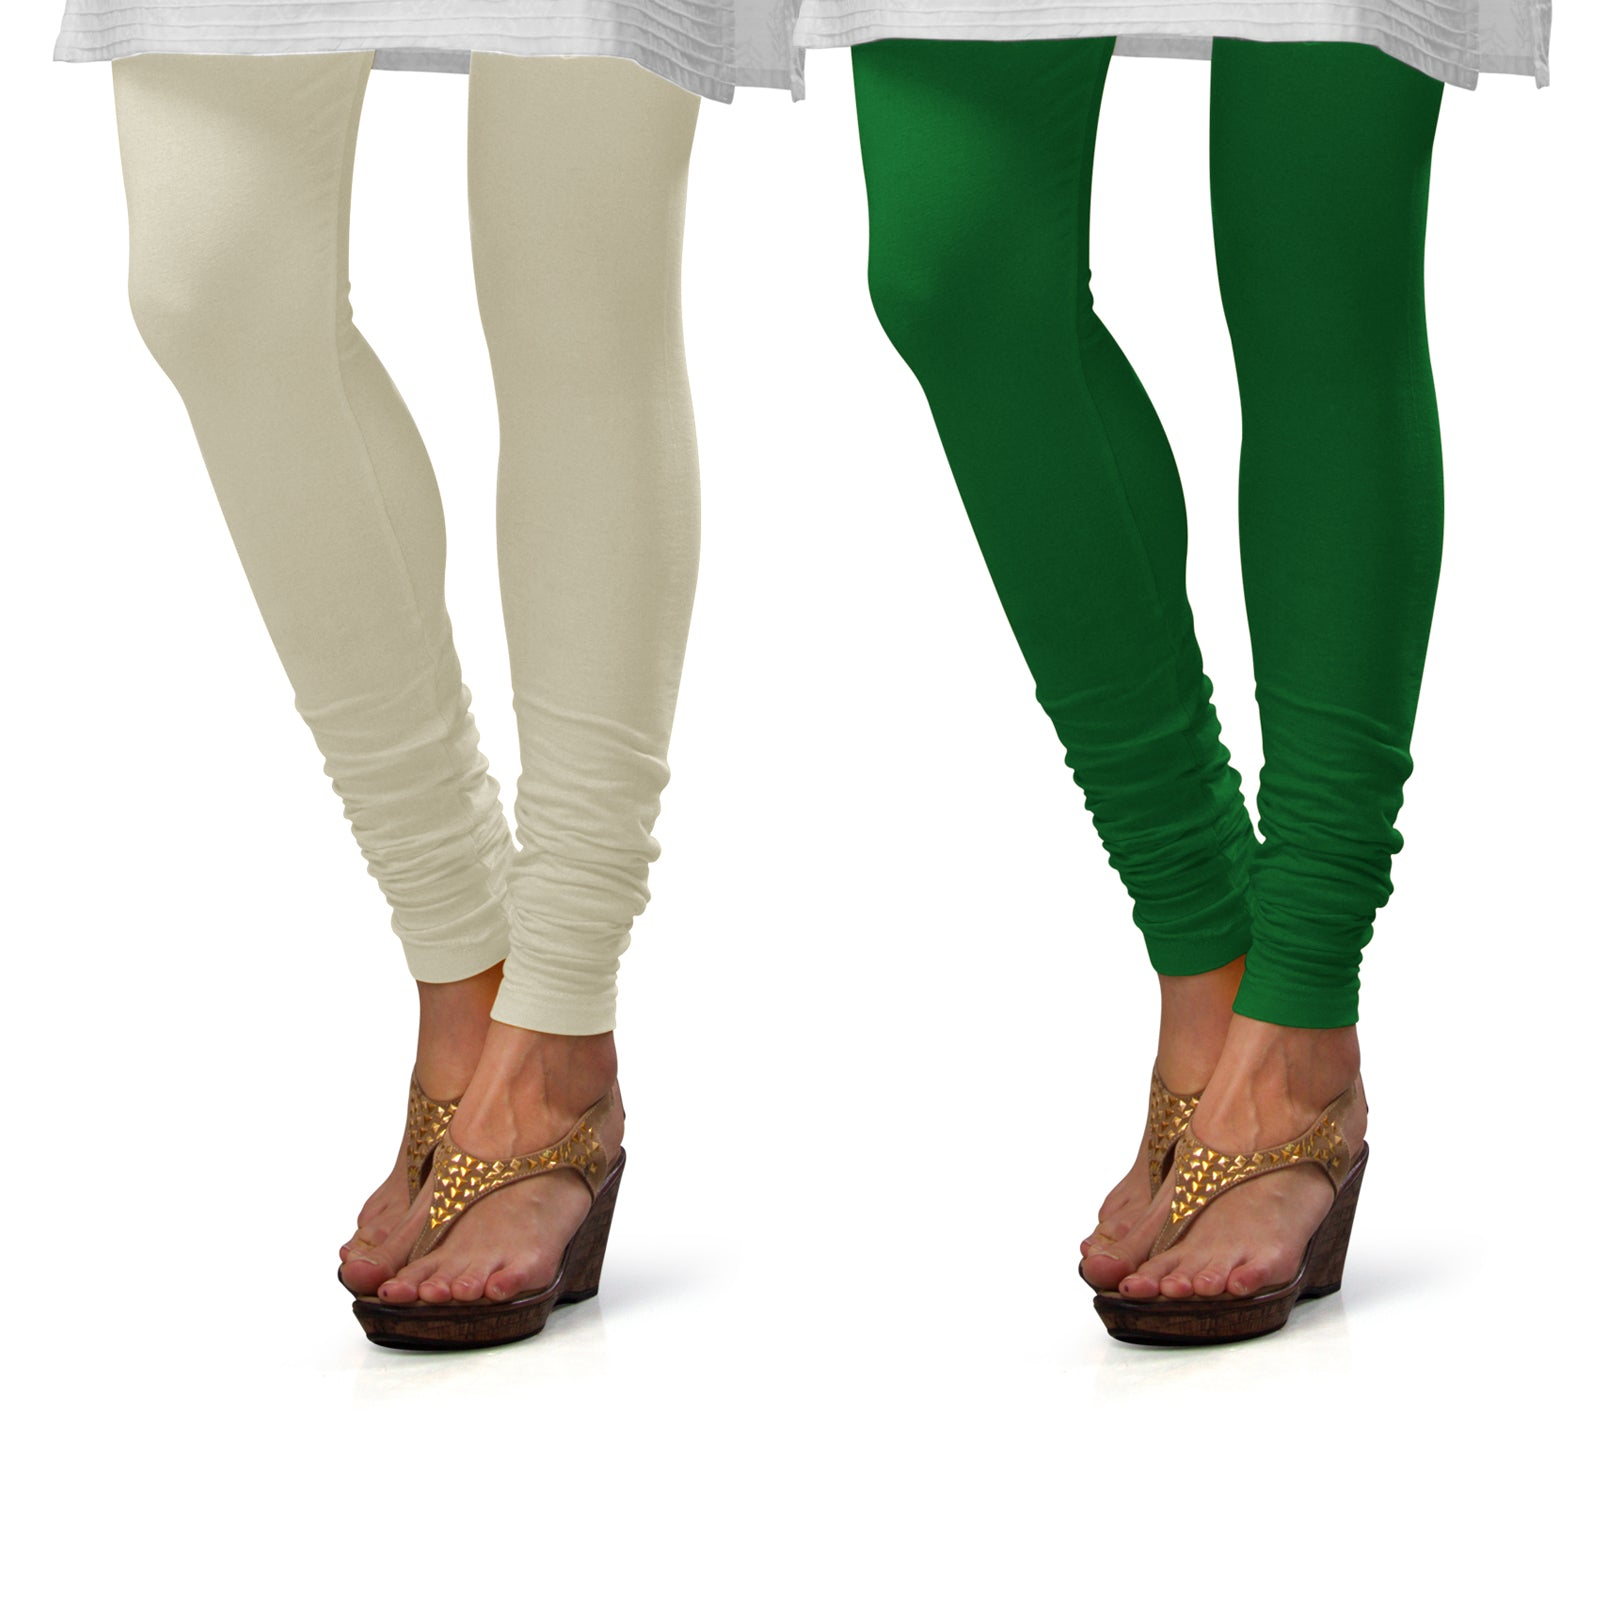 710a92302958d Sirtex Eazy Cotton Lycra Churidar Leggings (Pack of 2) : Off-White ...